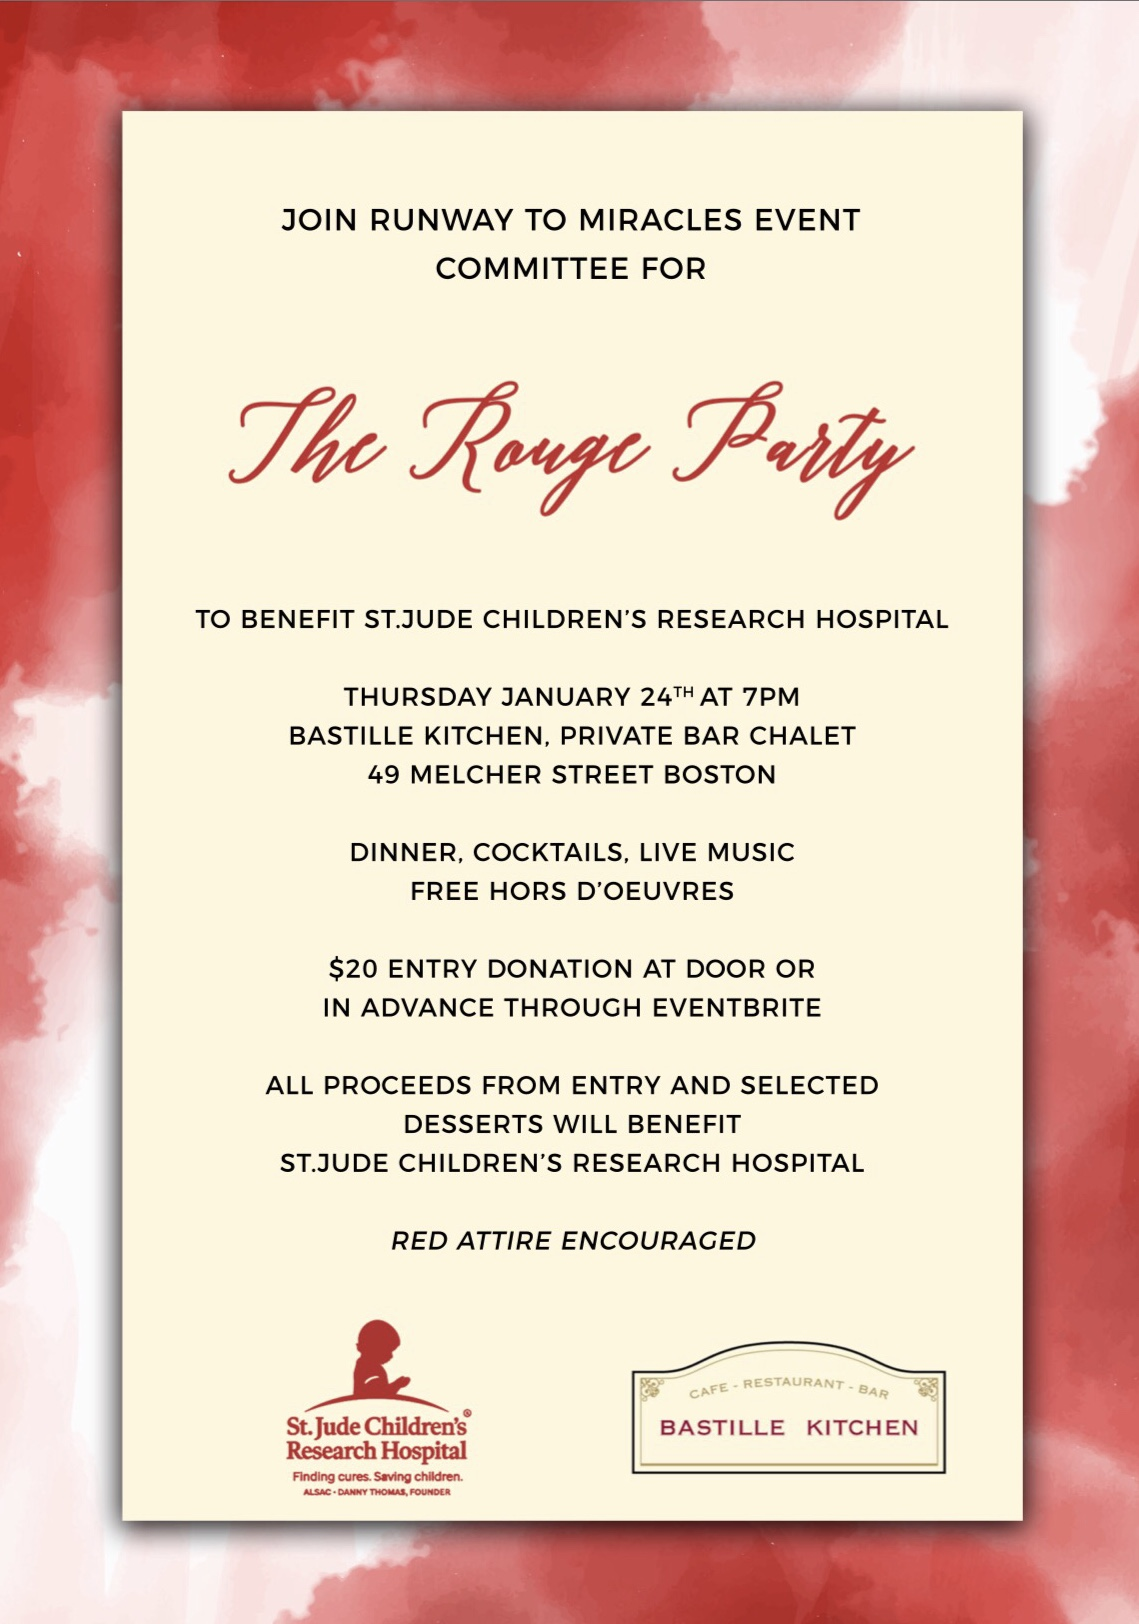 The Rouge Party Wellesley